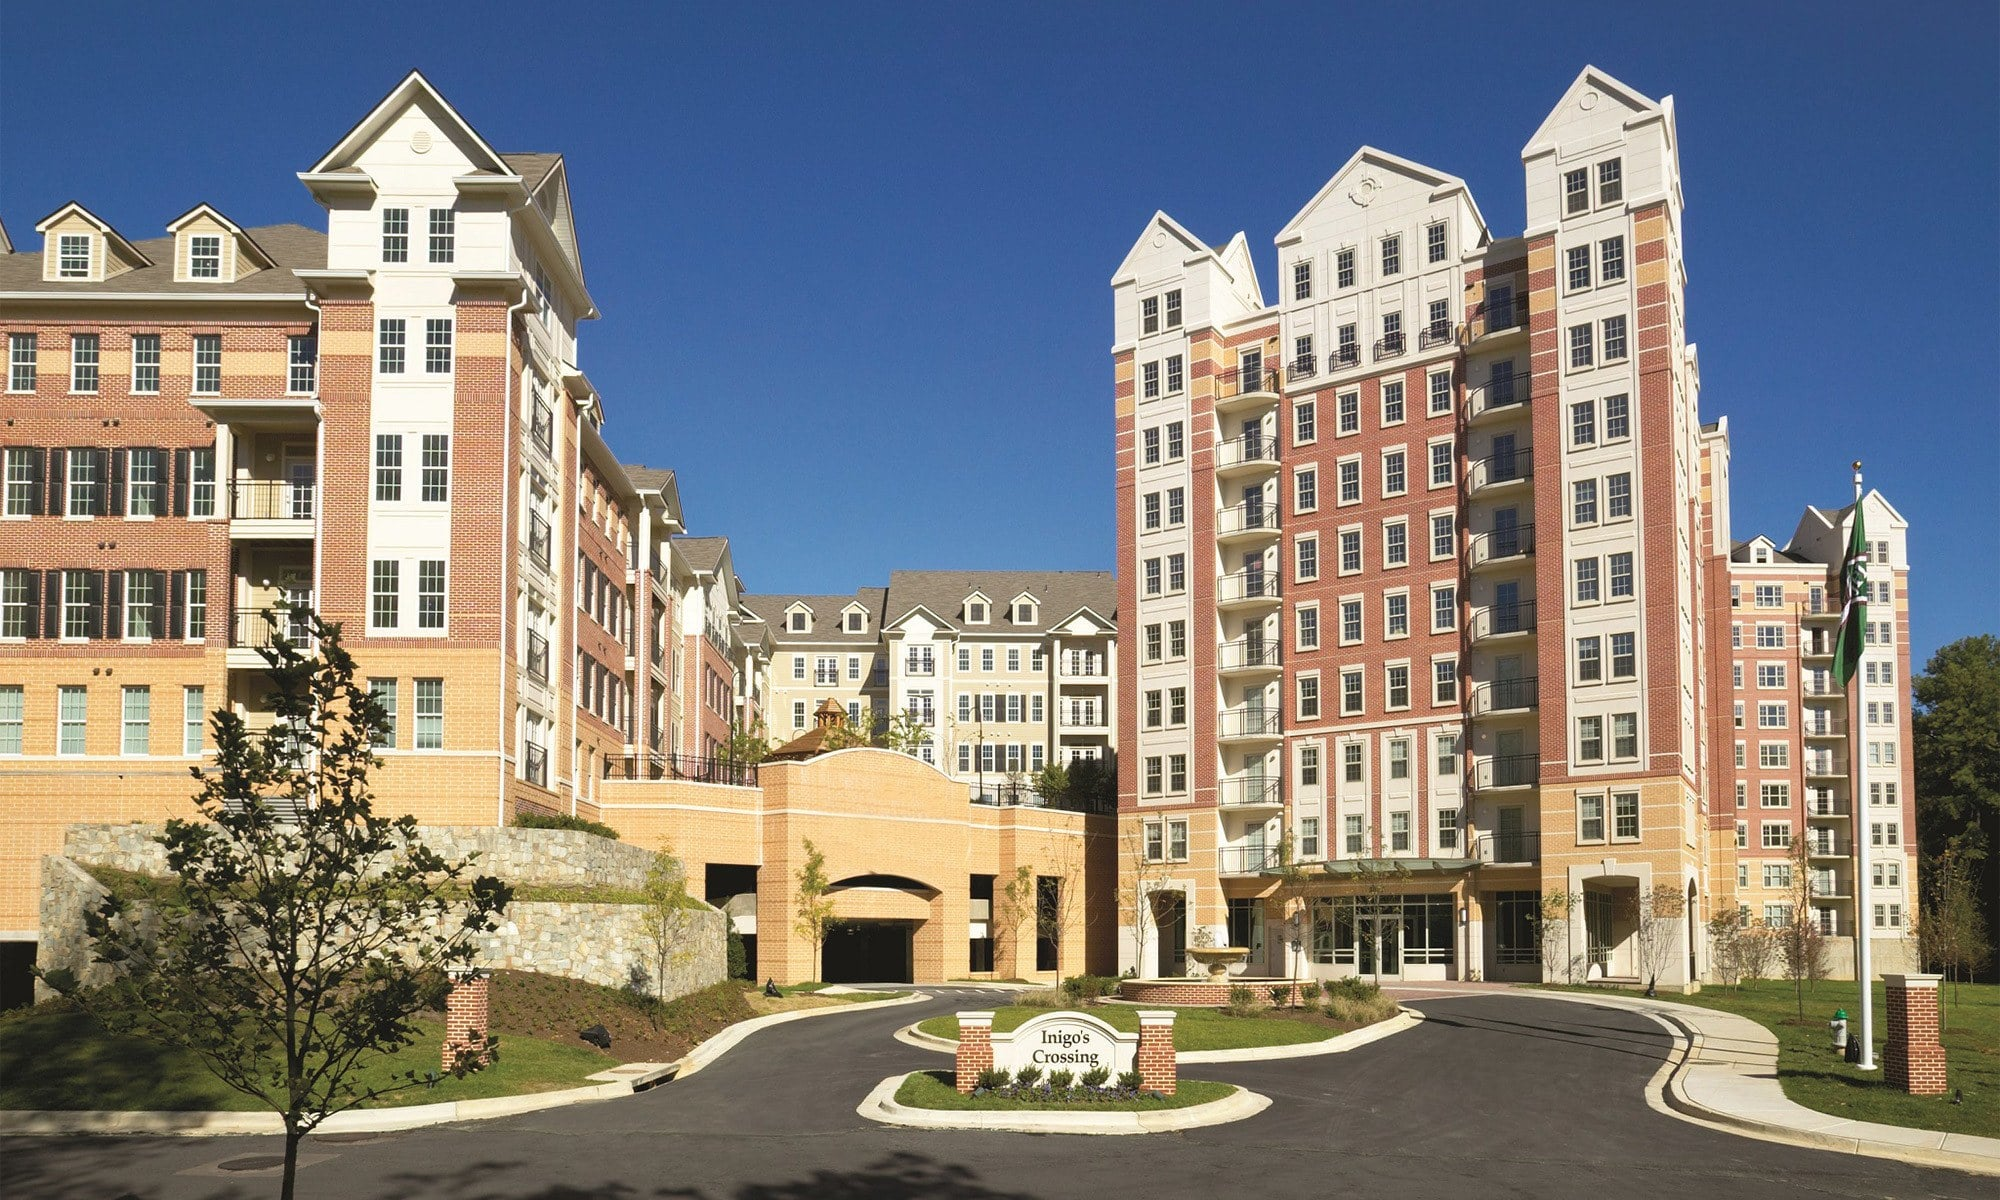 Merveilleux Apartments In North Bethesda, MD